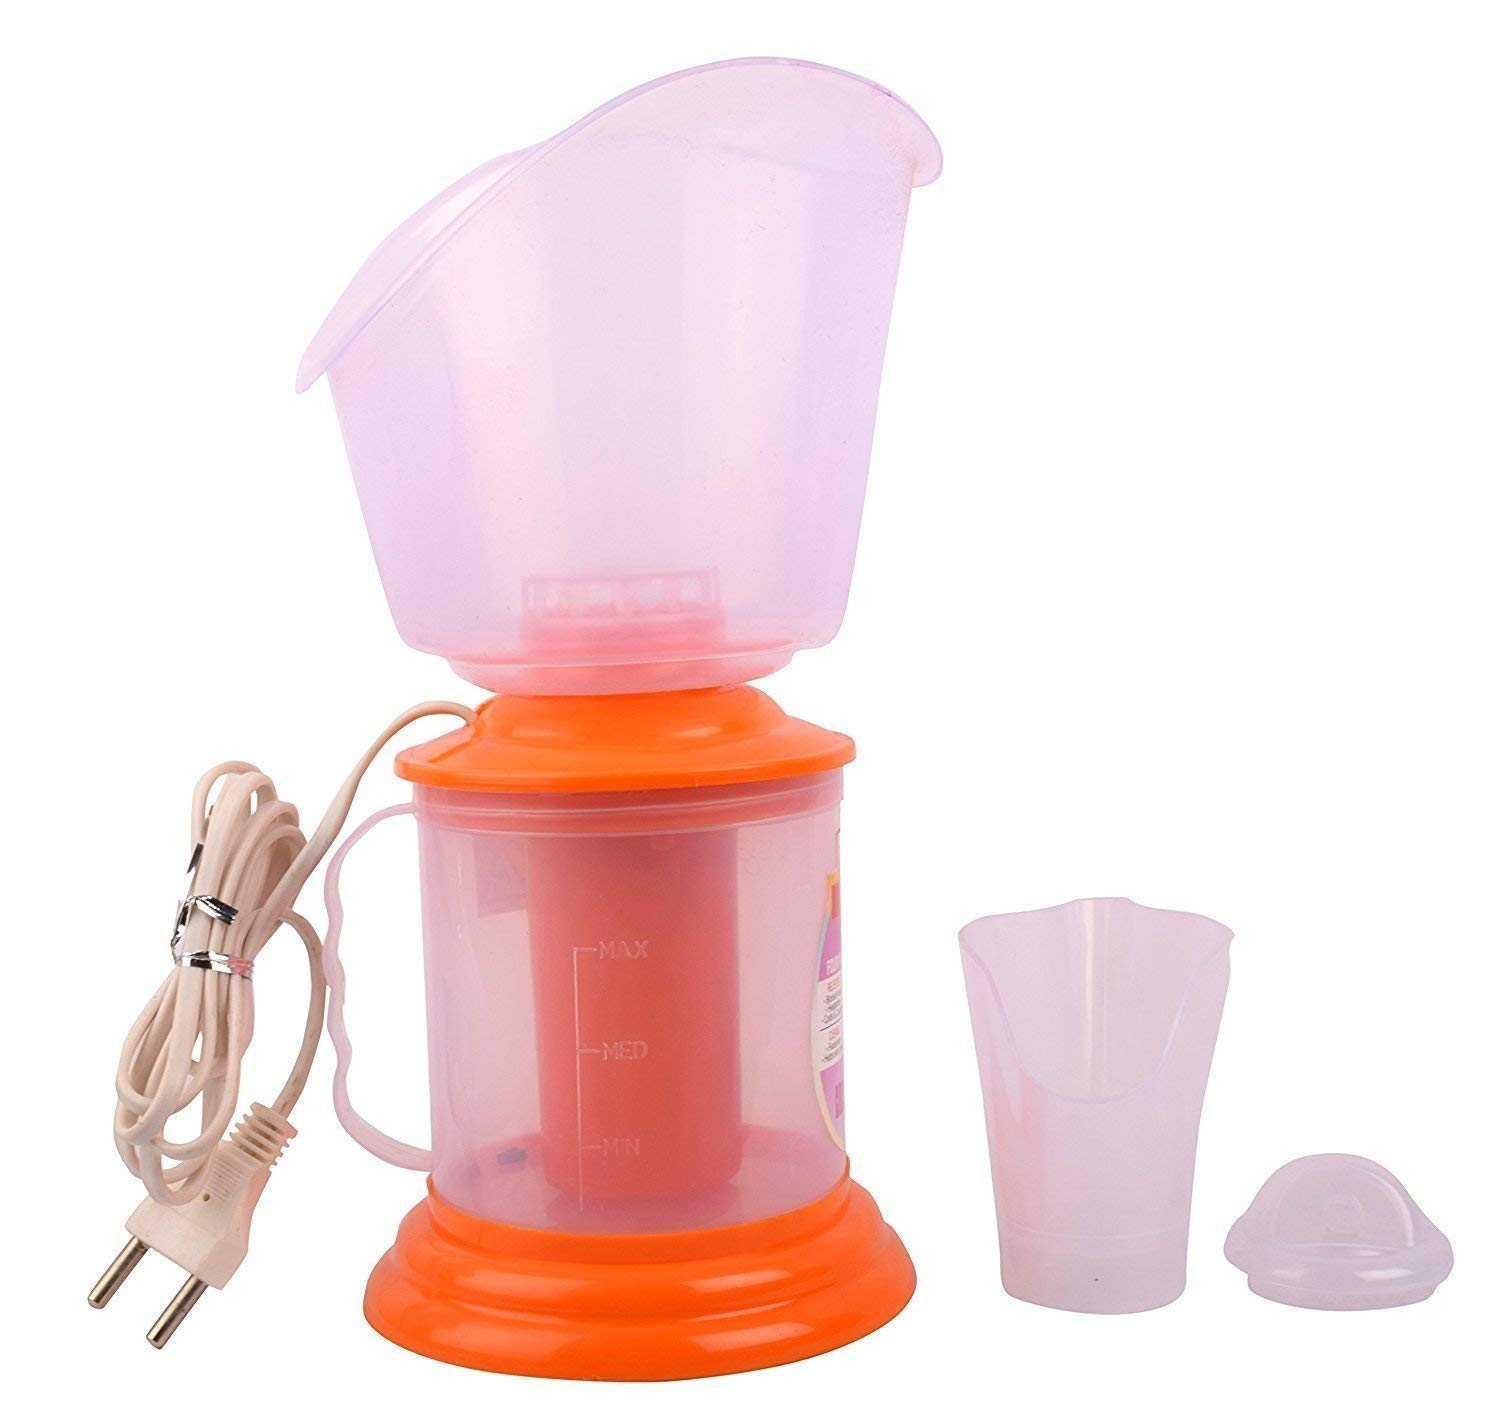 DOUBLE BODY HEALTHY STEAMER MOST NATURAL WAY FOR BEAUTIFUL & HEALTHY LIVING